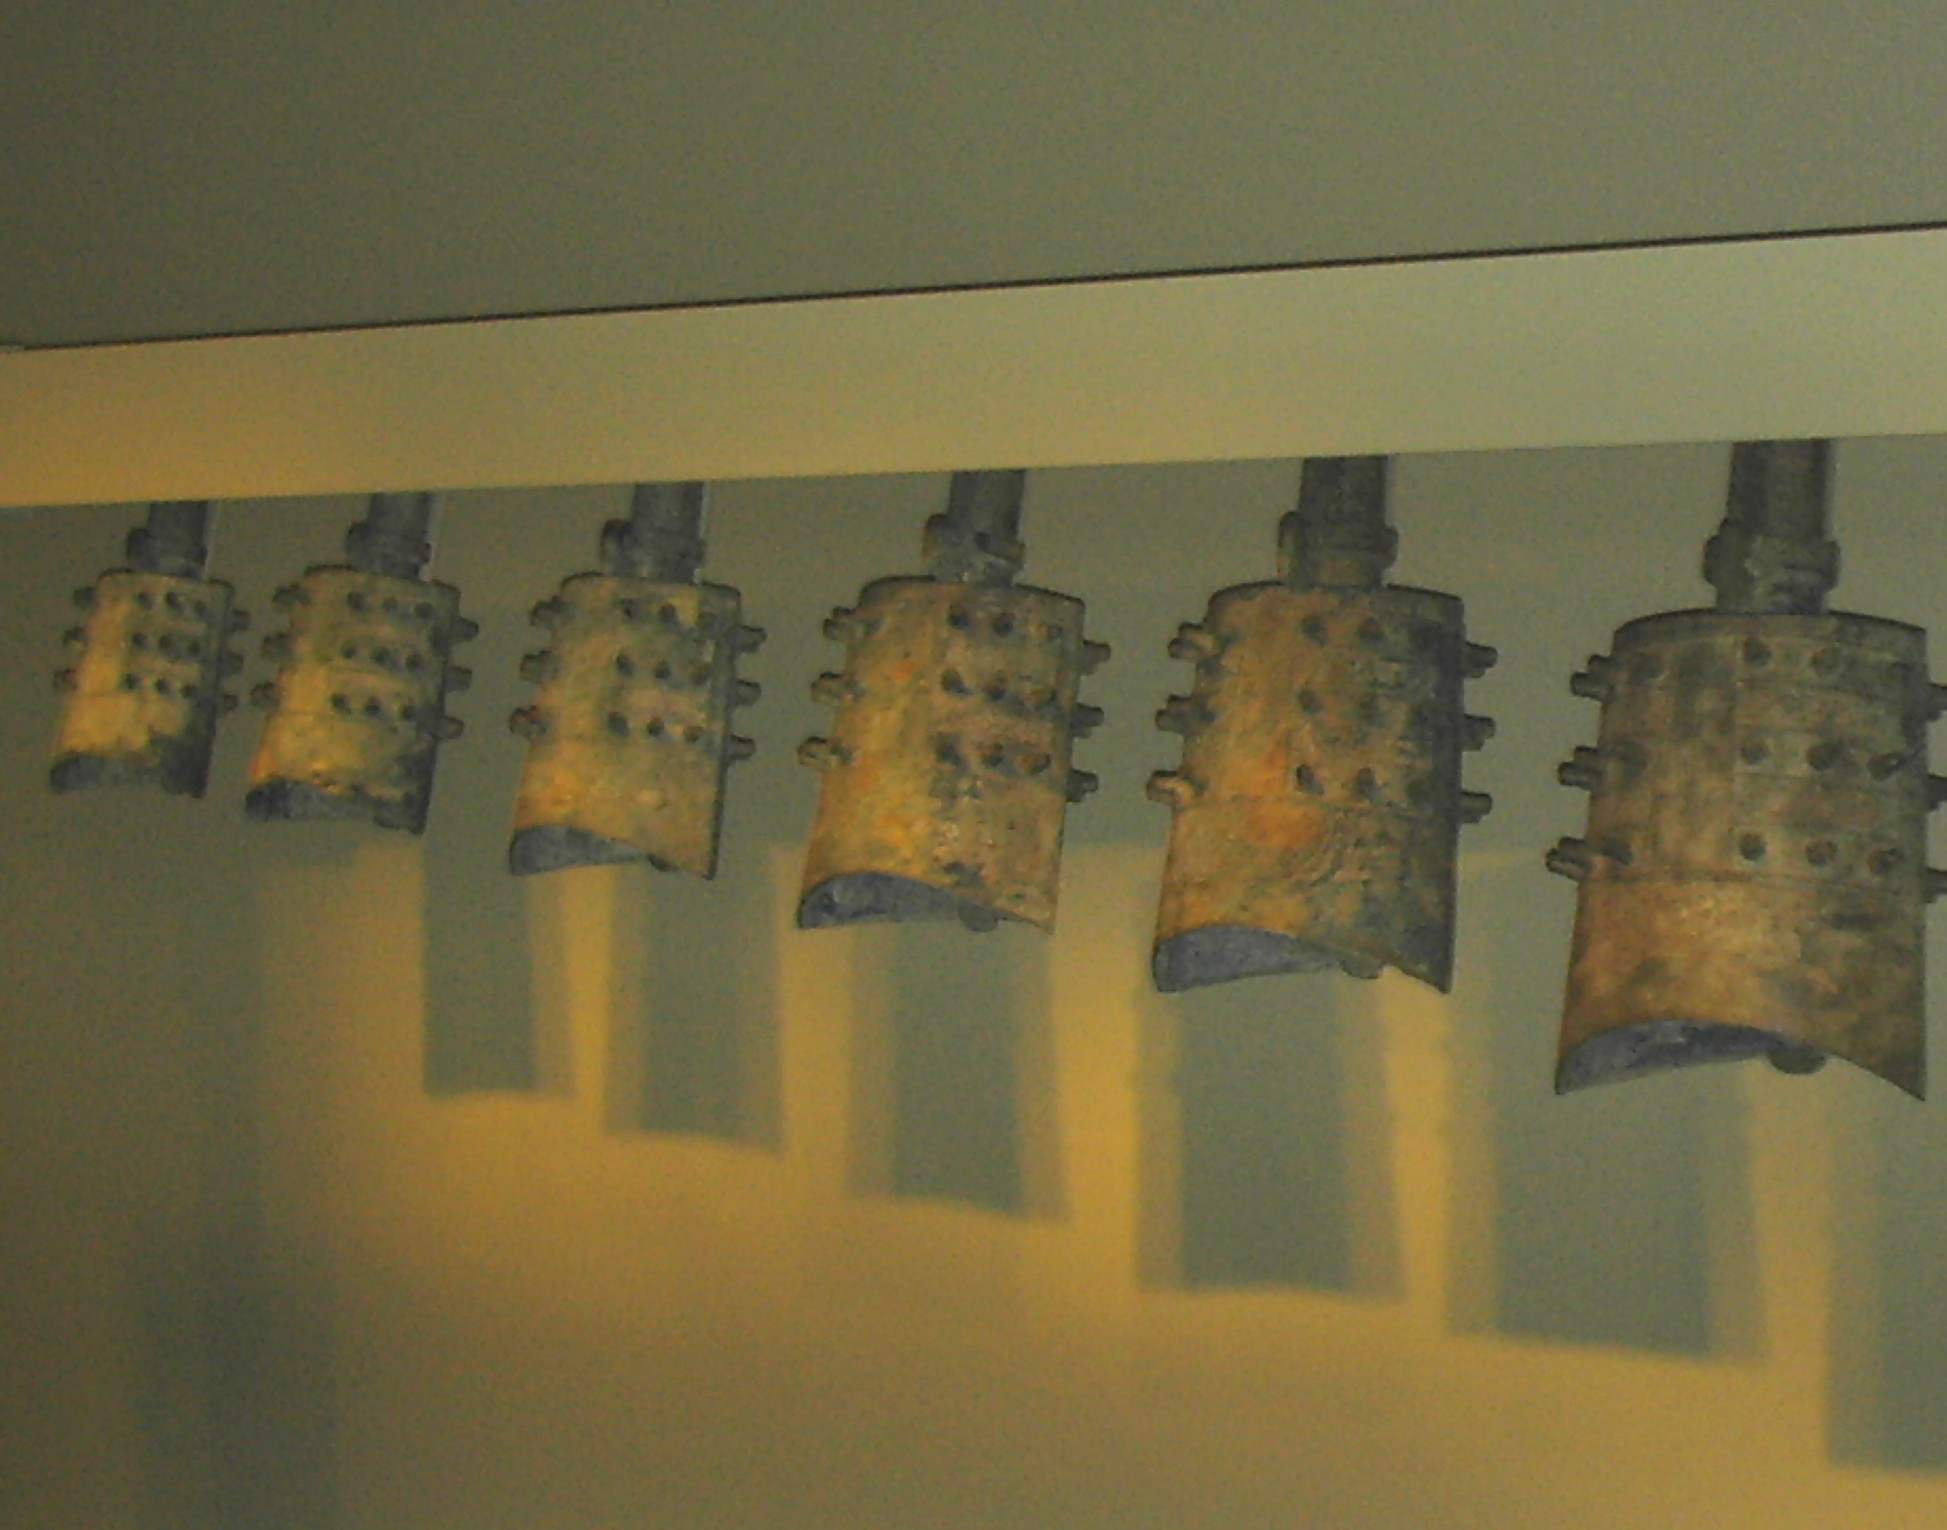 Ancient Chinese musical bronze bells from the Eastern Zhou Dynasty, c. 6th century BC.